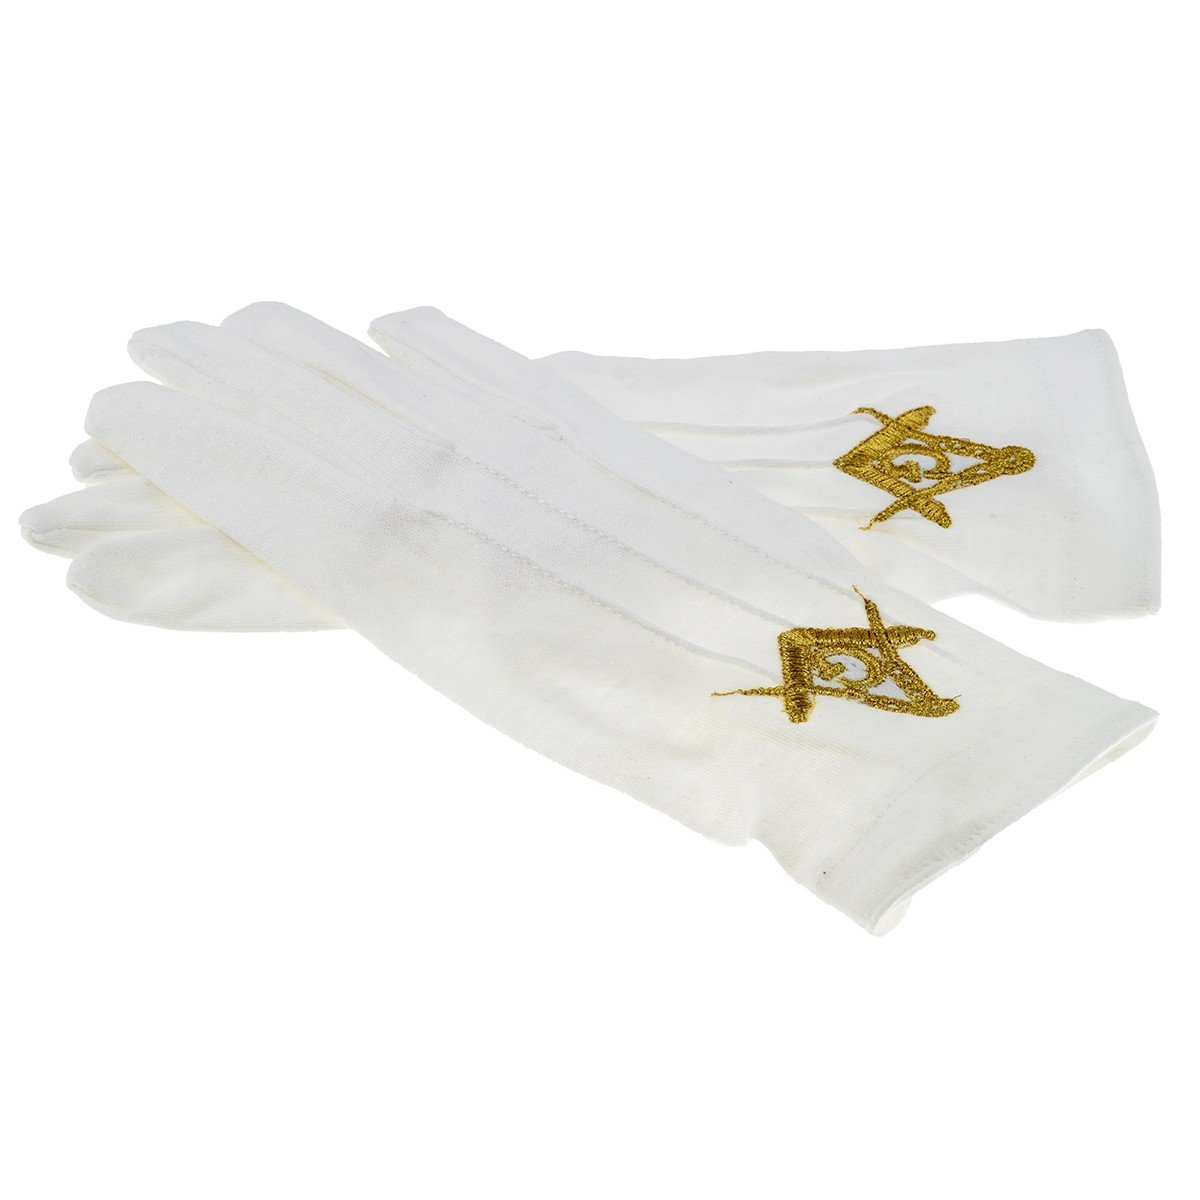 One Size White Cotton Gloves with Embroidered Gold with G Masonic Design XLFG013